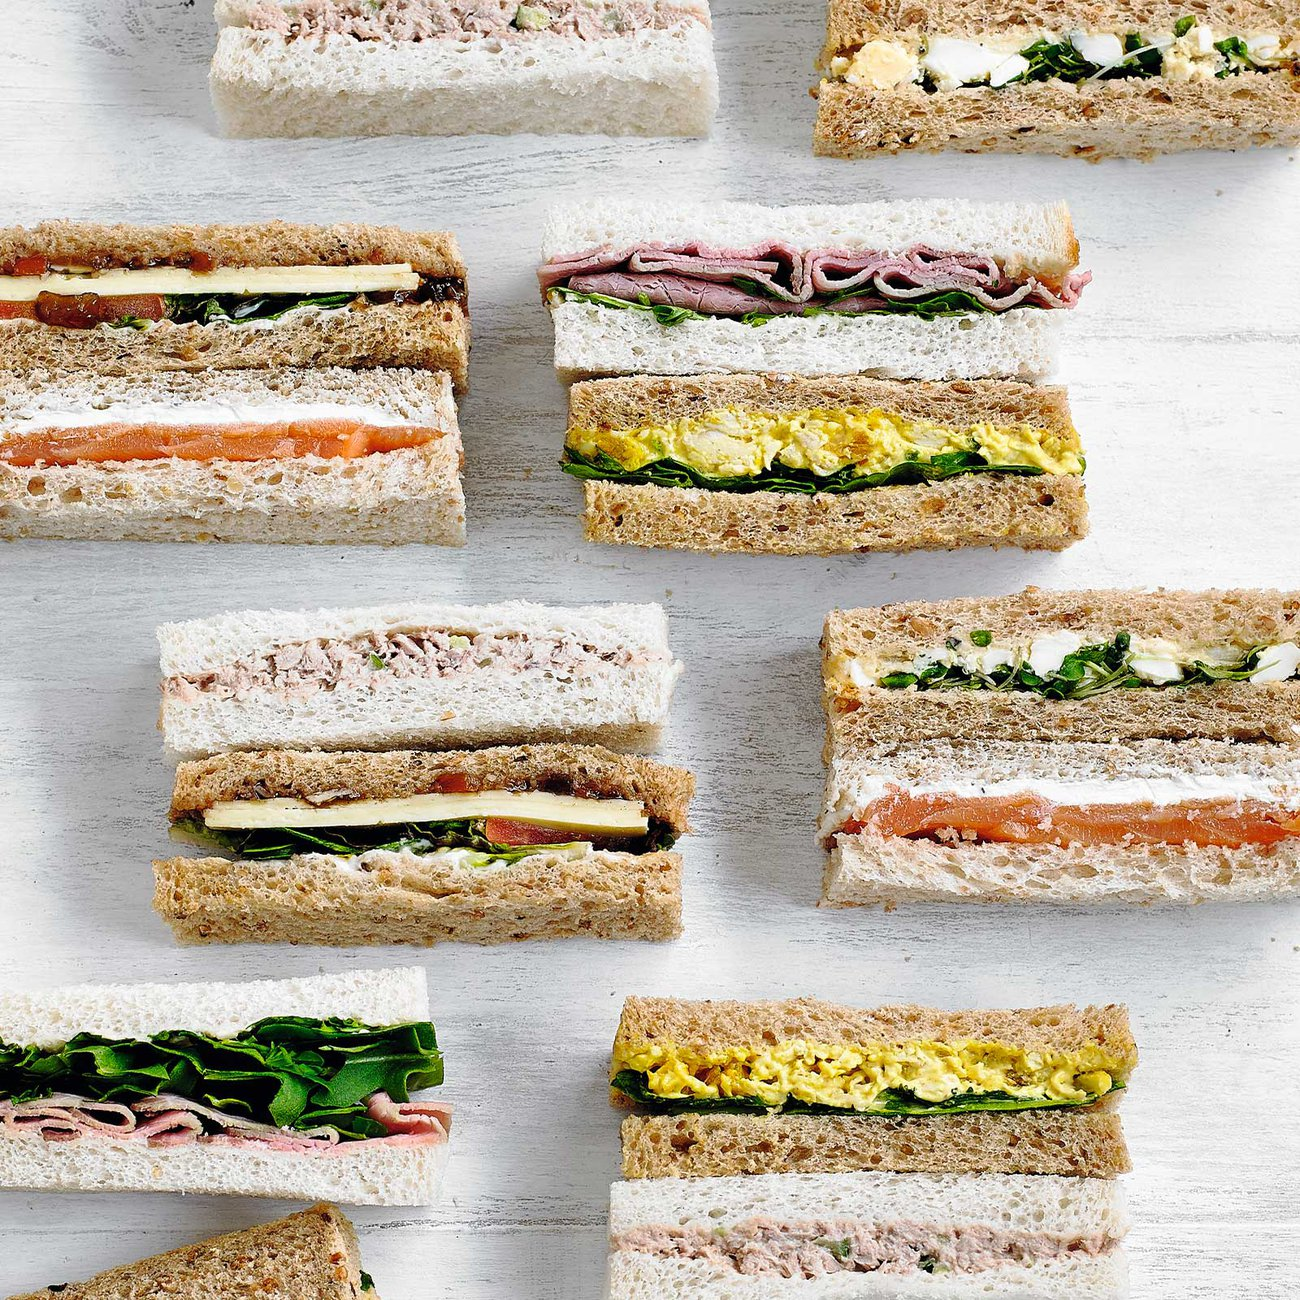 Finger sandwiches allow for a variety of flavours